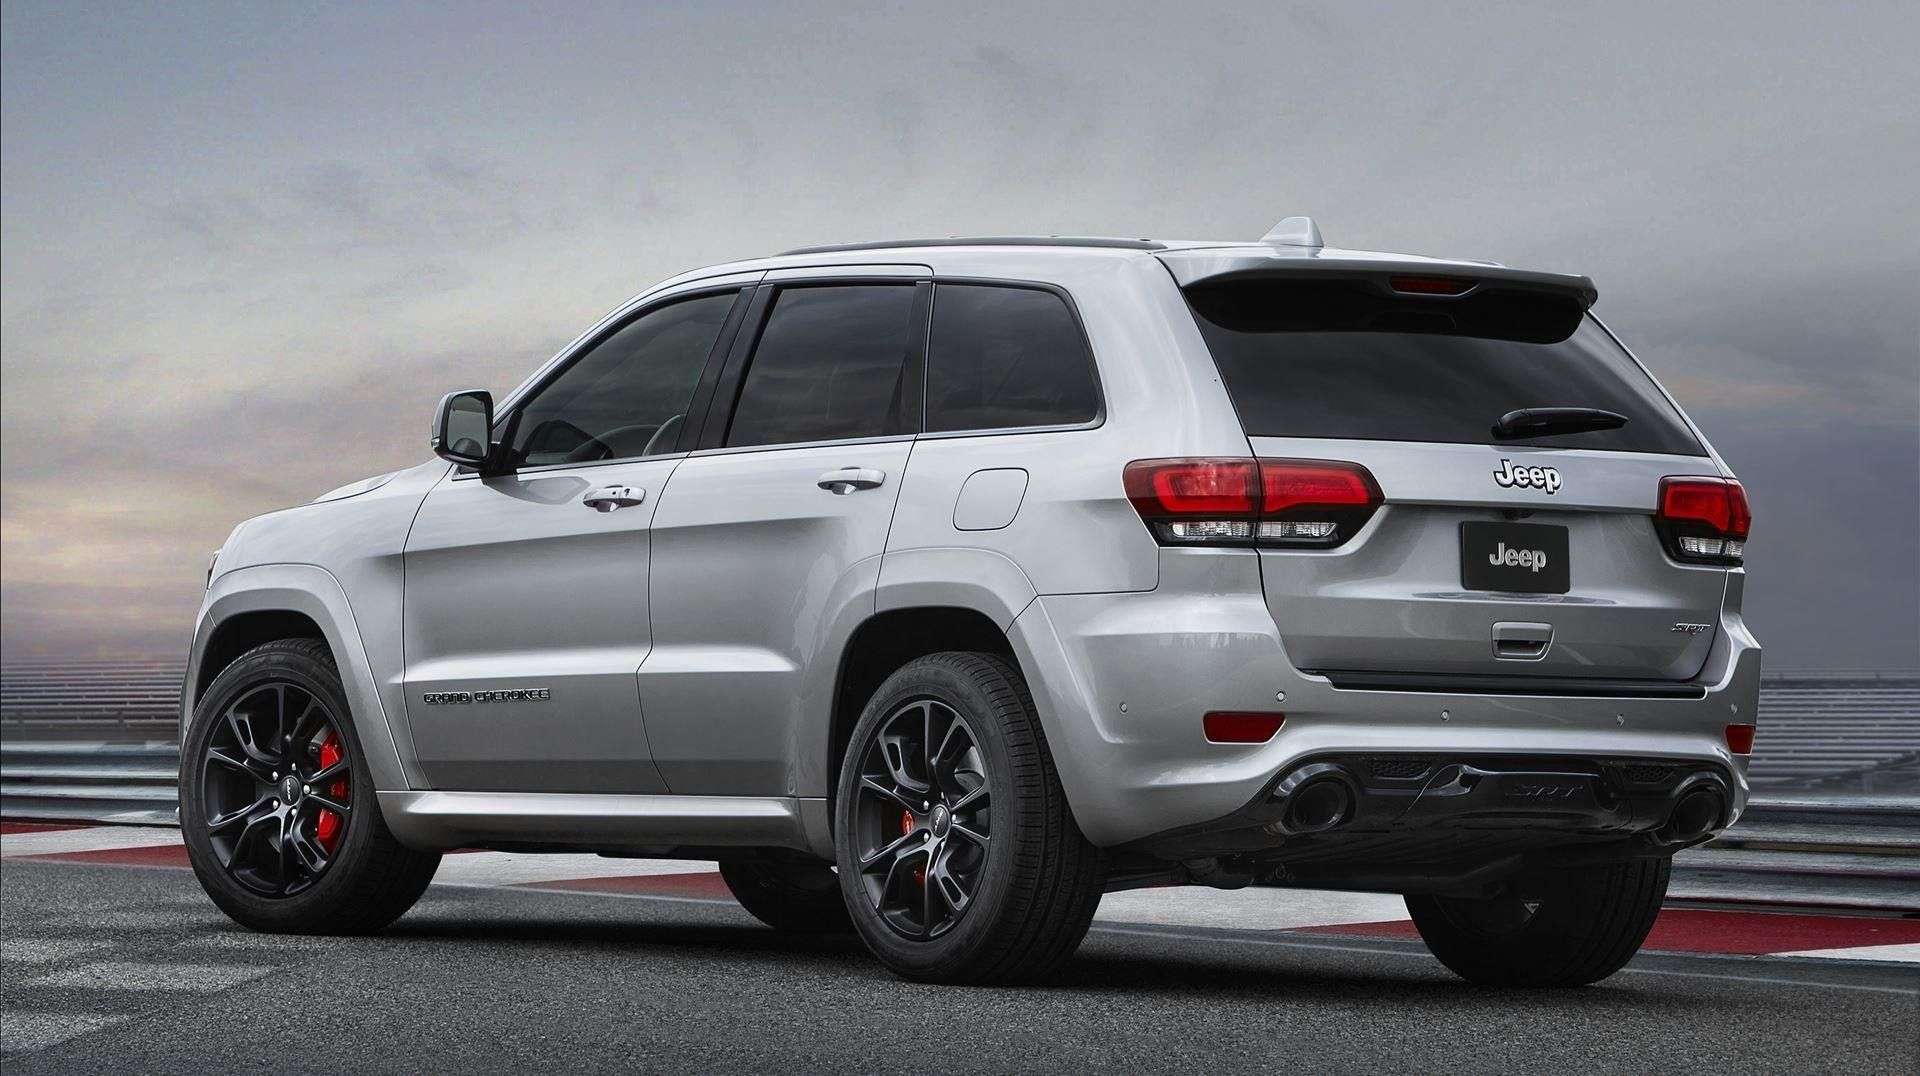 2018 Jeep Grand Cherokee Srt Redesign Price And Review 2017 Jeep Grand Cherokee Jeep Grand Cherokee Srt Jeep Grand